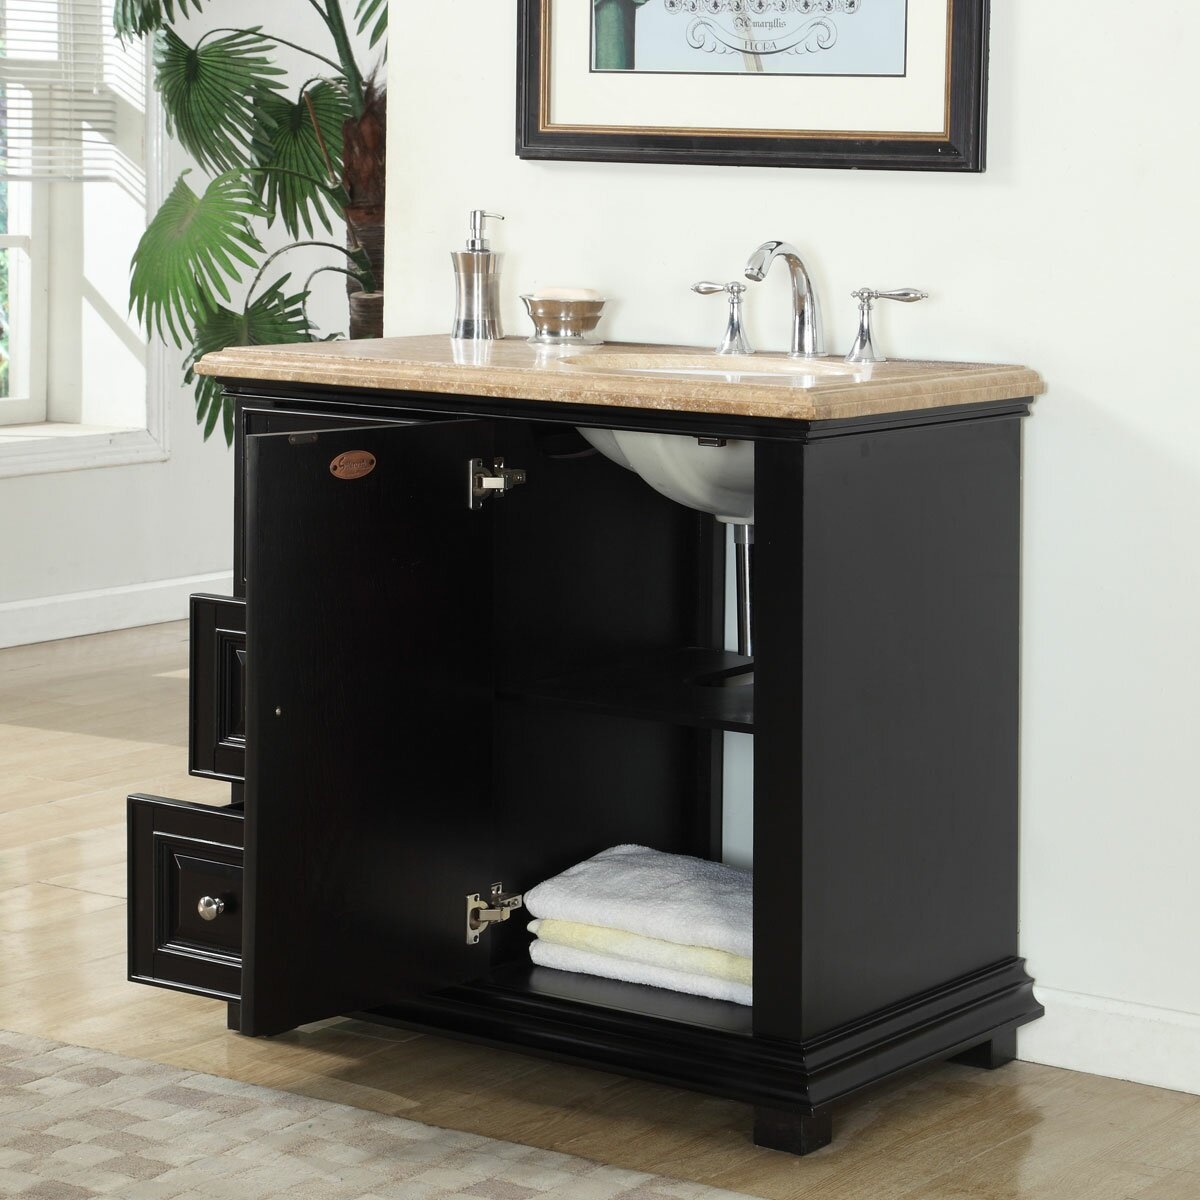 Silkroad Exclusive 36 Single Bathroom Vanity Set With Sink On Right Side Reviews